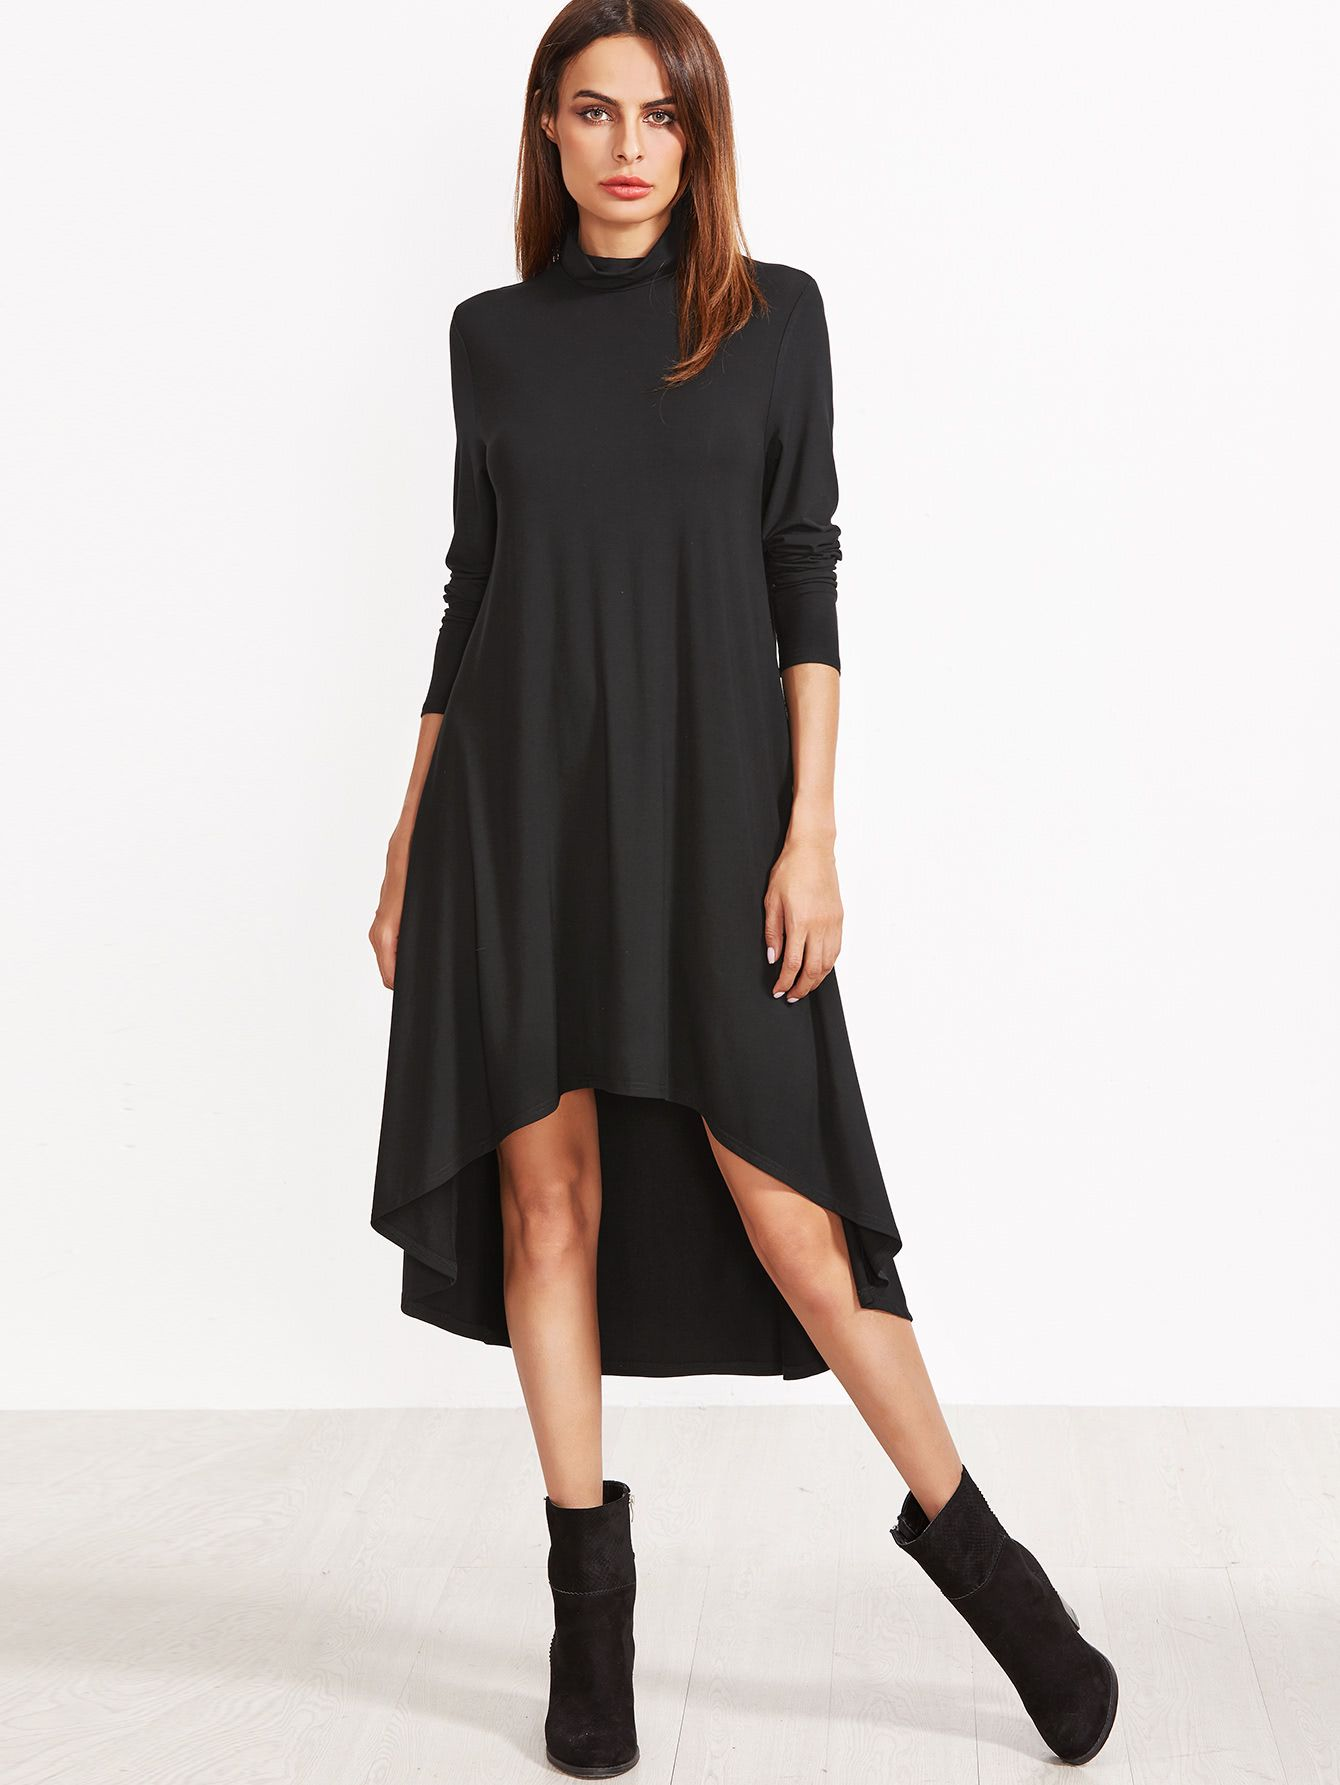 3c0e07bb2341 Shop Cowl Neck Dip Hem Swing Dress online. SheIn offers Cowl Neck Dip Hem  Swing Dress & more to fit your fashionable needs.